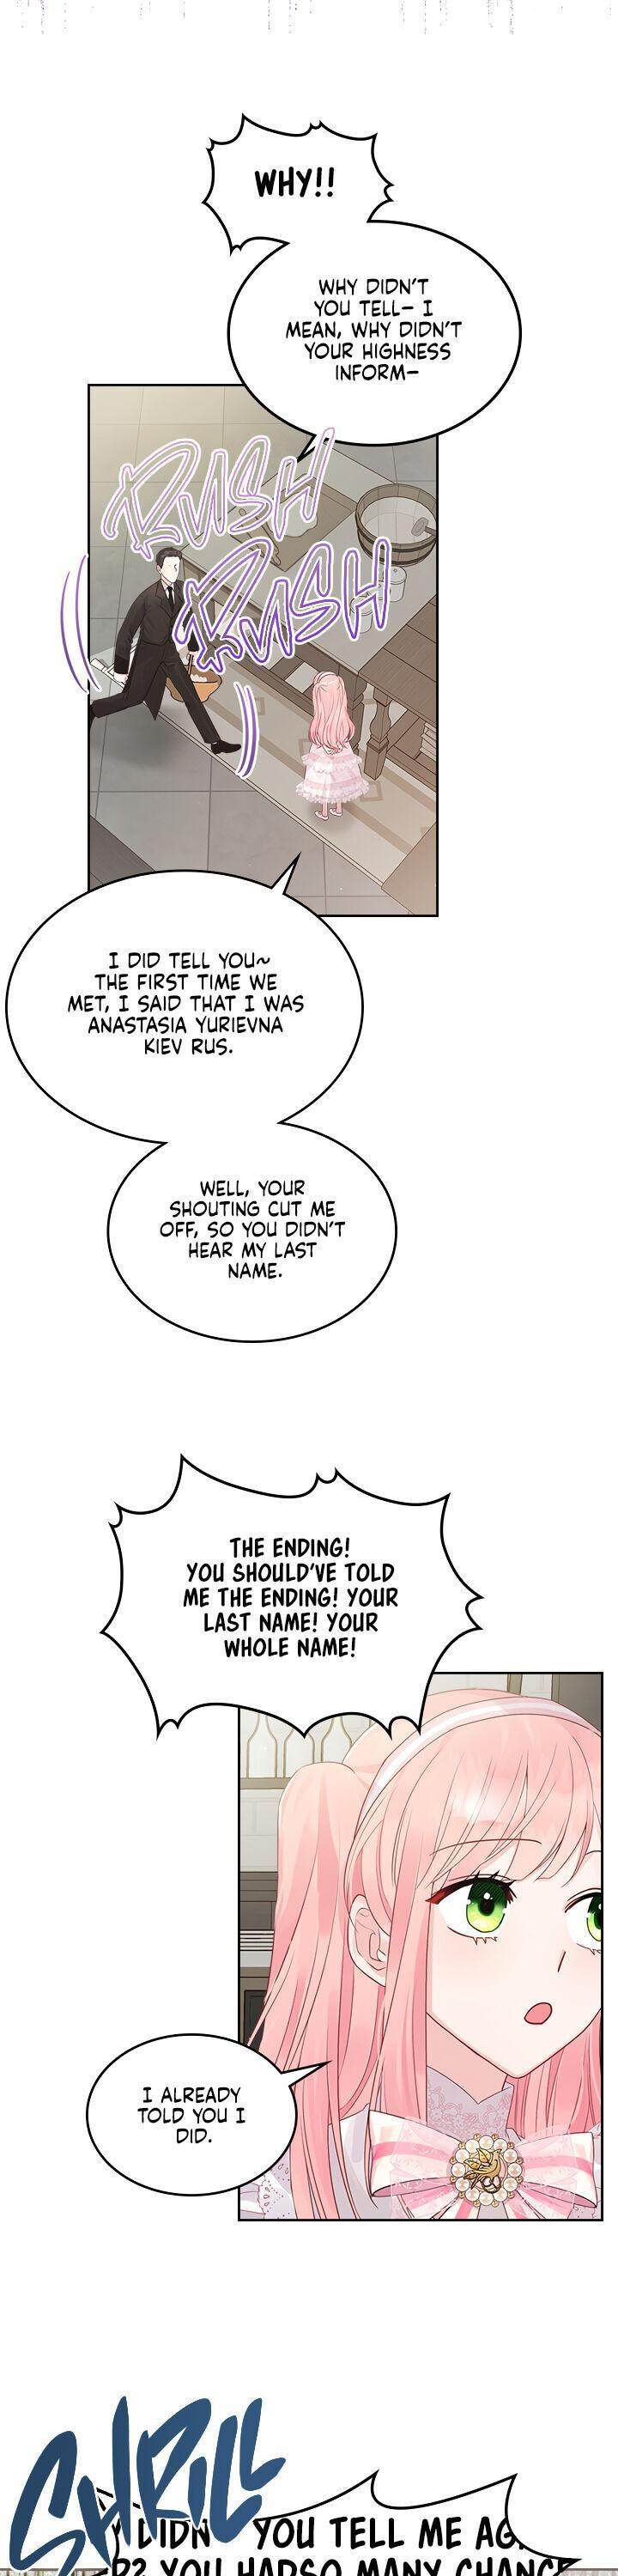 The Villainous Princess Wants To Live In A Gingerbread House Chapter 25 page 4 - Mangakakalots.com